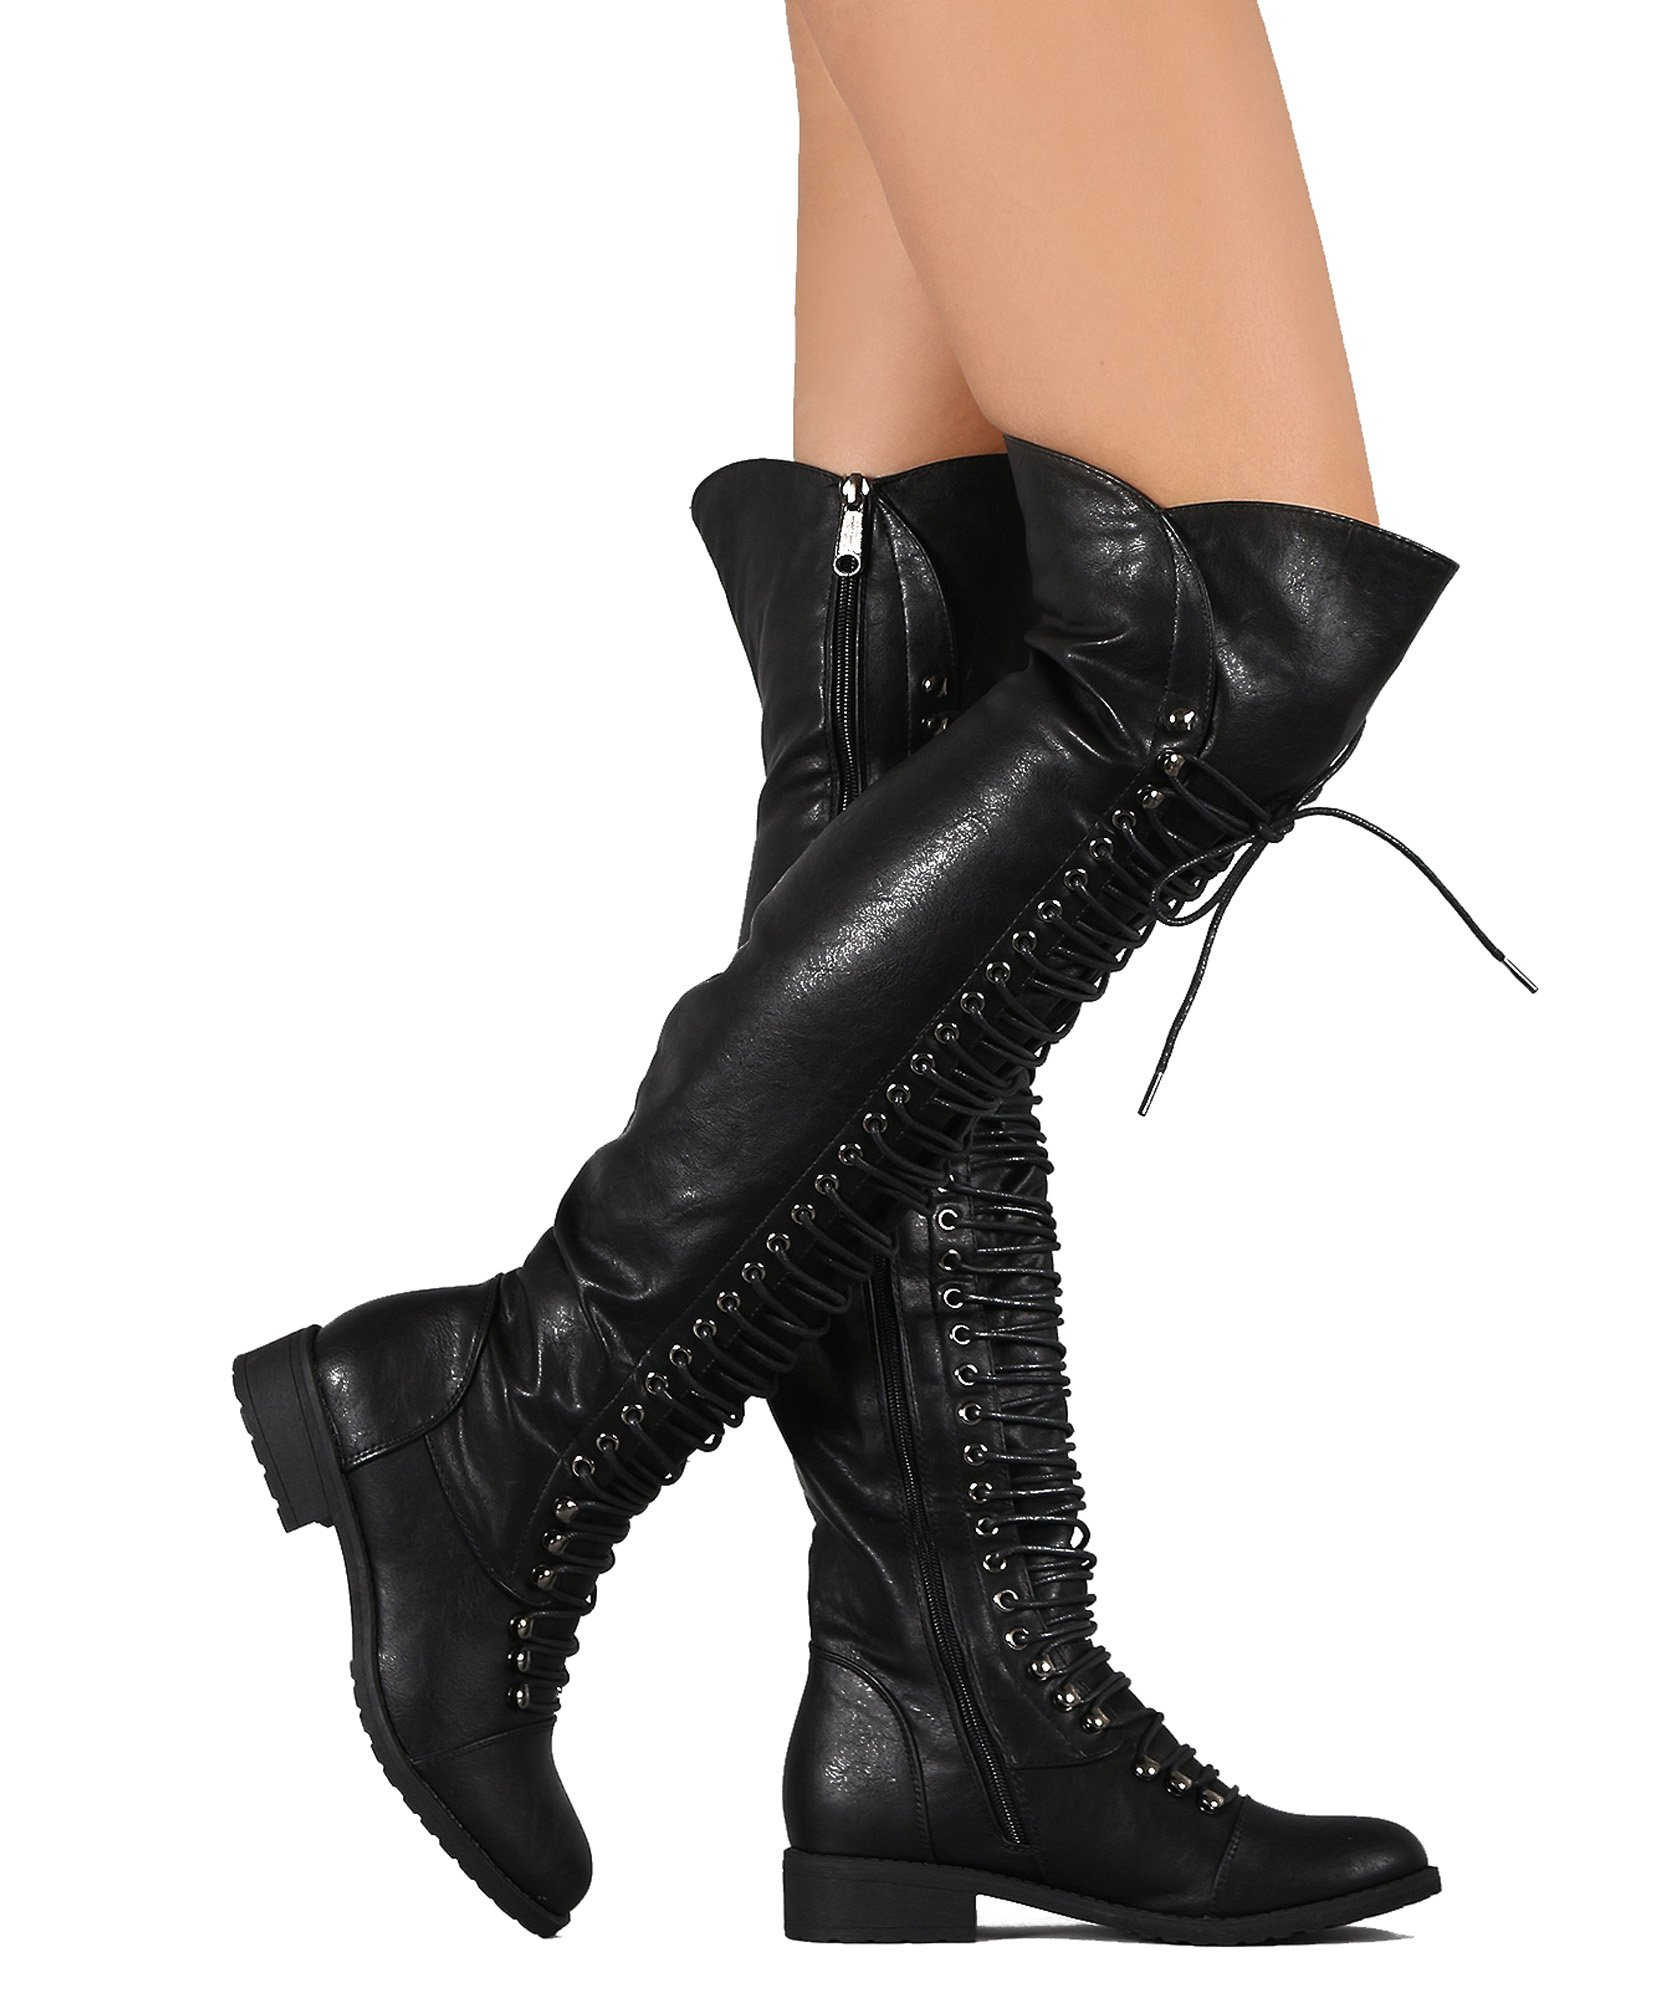 RF ROOM OF FASHION Women's Lace Up Military Over The Knee OTK Combat Riding Boots Black (10) by RF ROOM OF FASHION (Image #1)